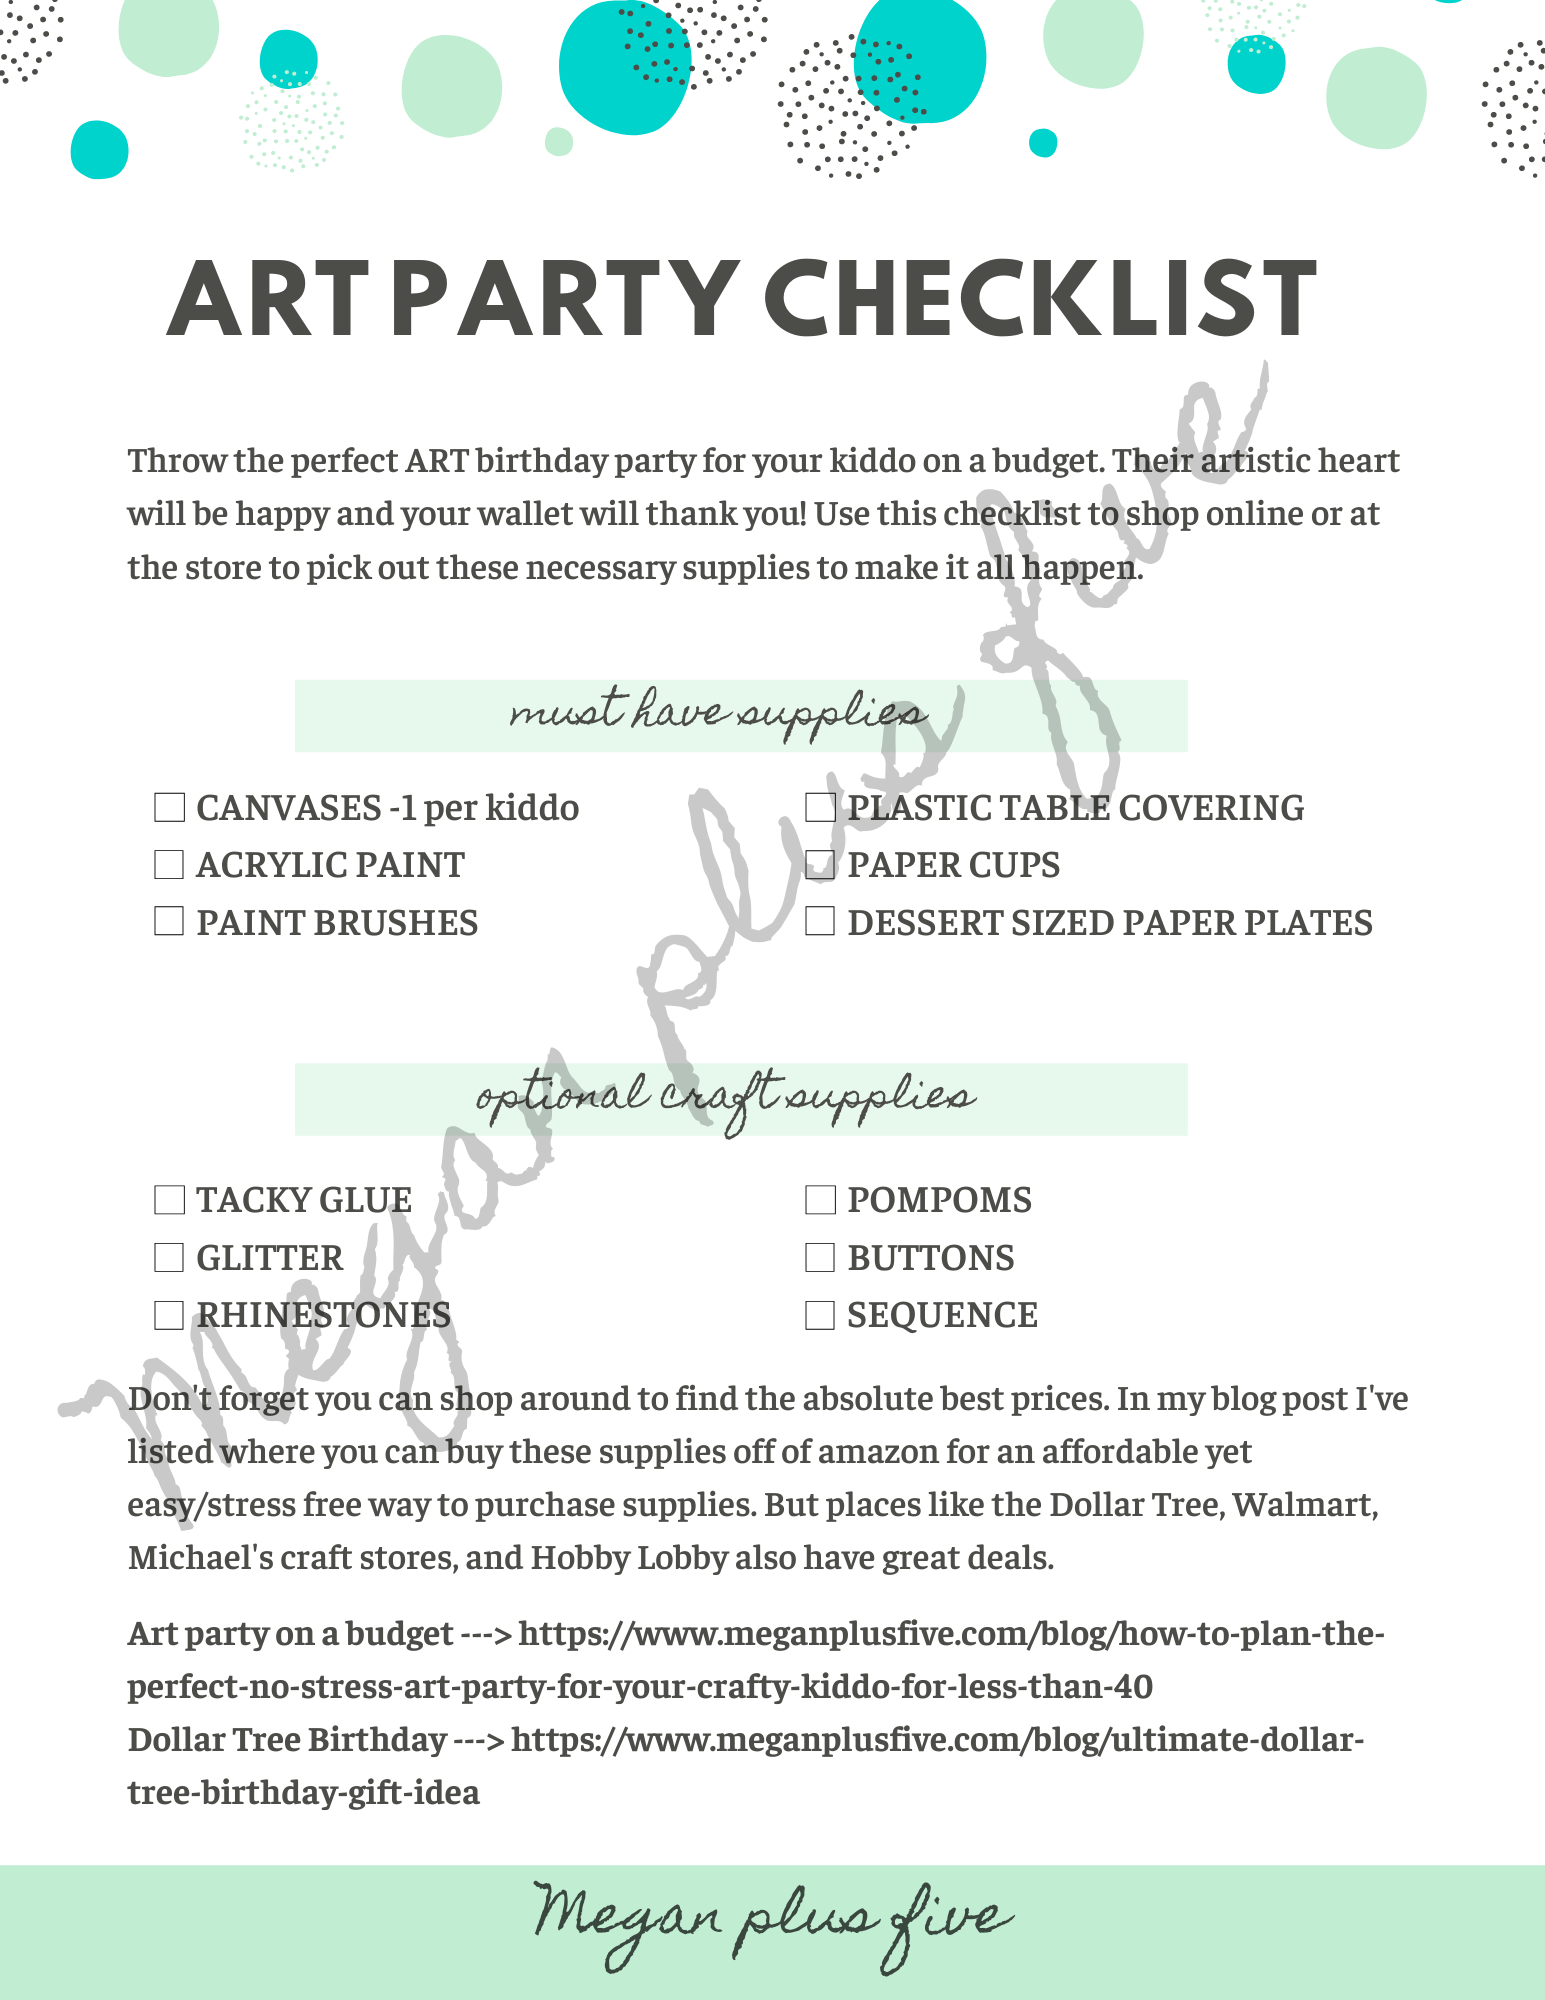 Art party on a budget. FREE printable how to plan a crafty art birthday party without breaking the bank